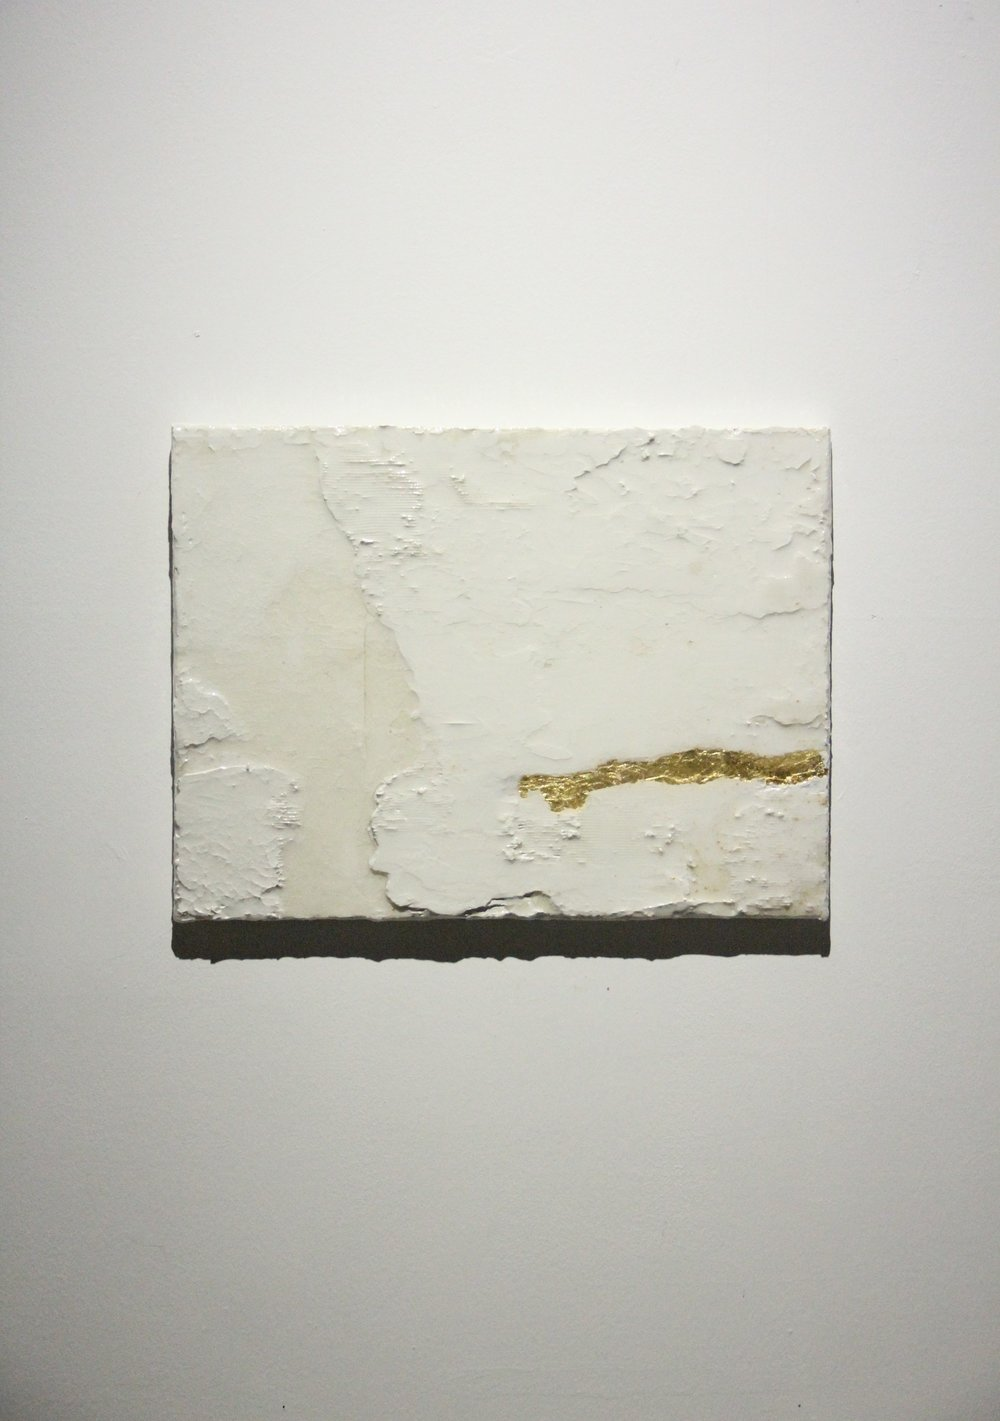 BEN LOONG 龙凯祥 b. 1988, Dyke 堤, 2018, Resinated drywall plaster and gold leaf on linen 树脂、石膏、金箔、麻布表面, 46 x 60 cm.JPG